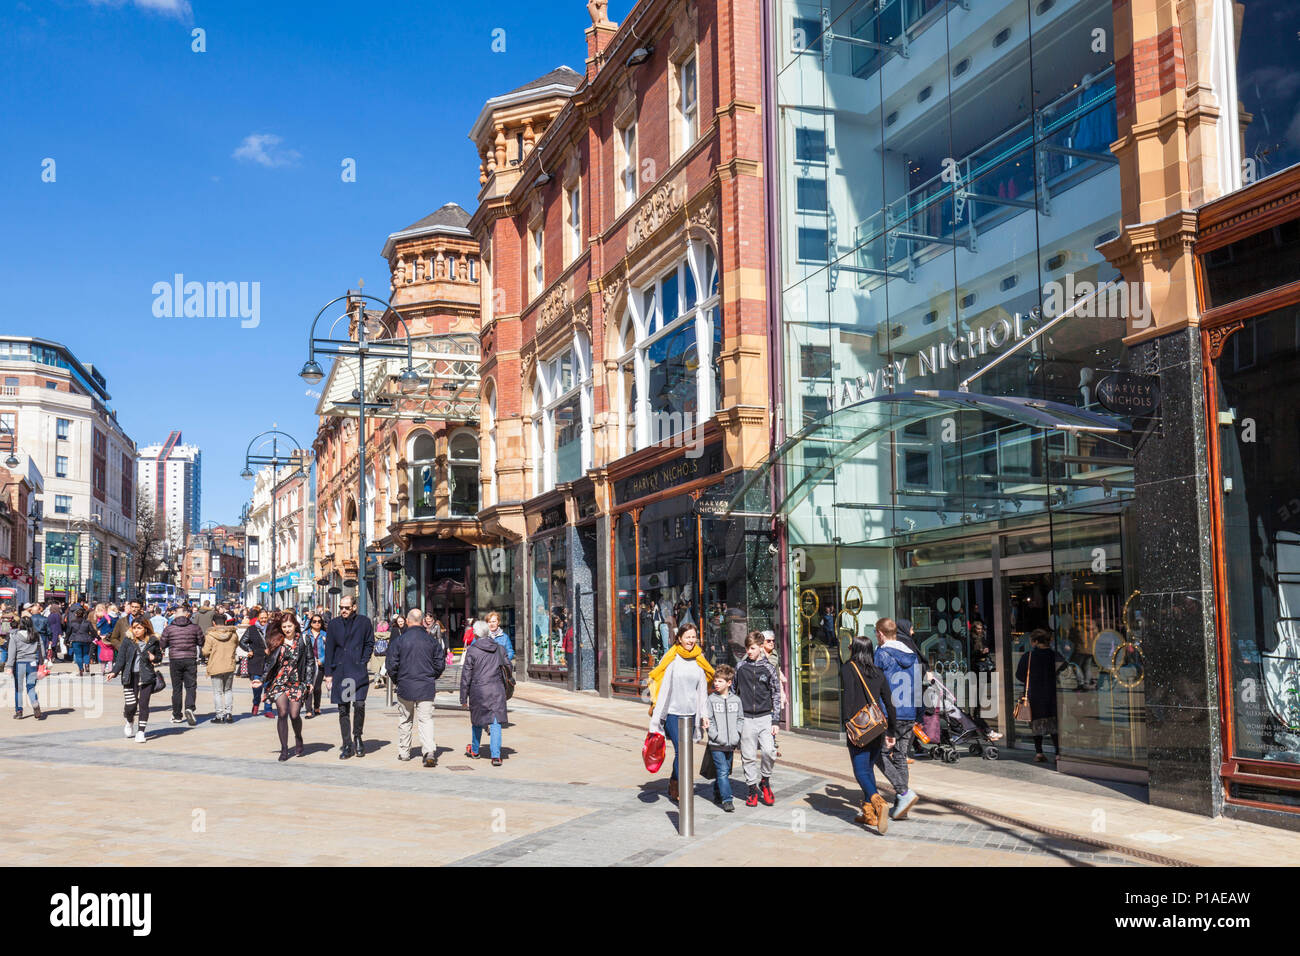 yorkshire england leeds yorkshire england Briggate leeds city centre harvey nichols department store biggate leeds yorkshire uk gb europe - Stock Image